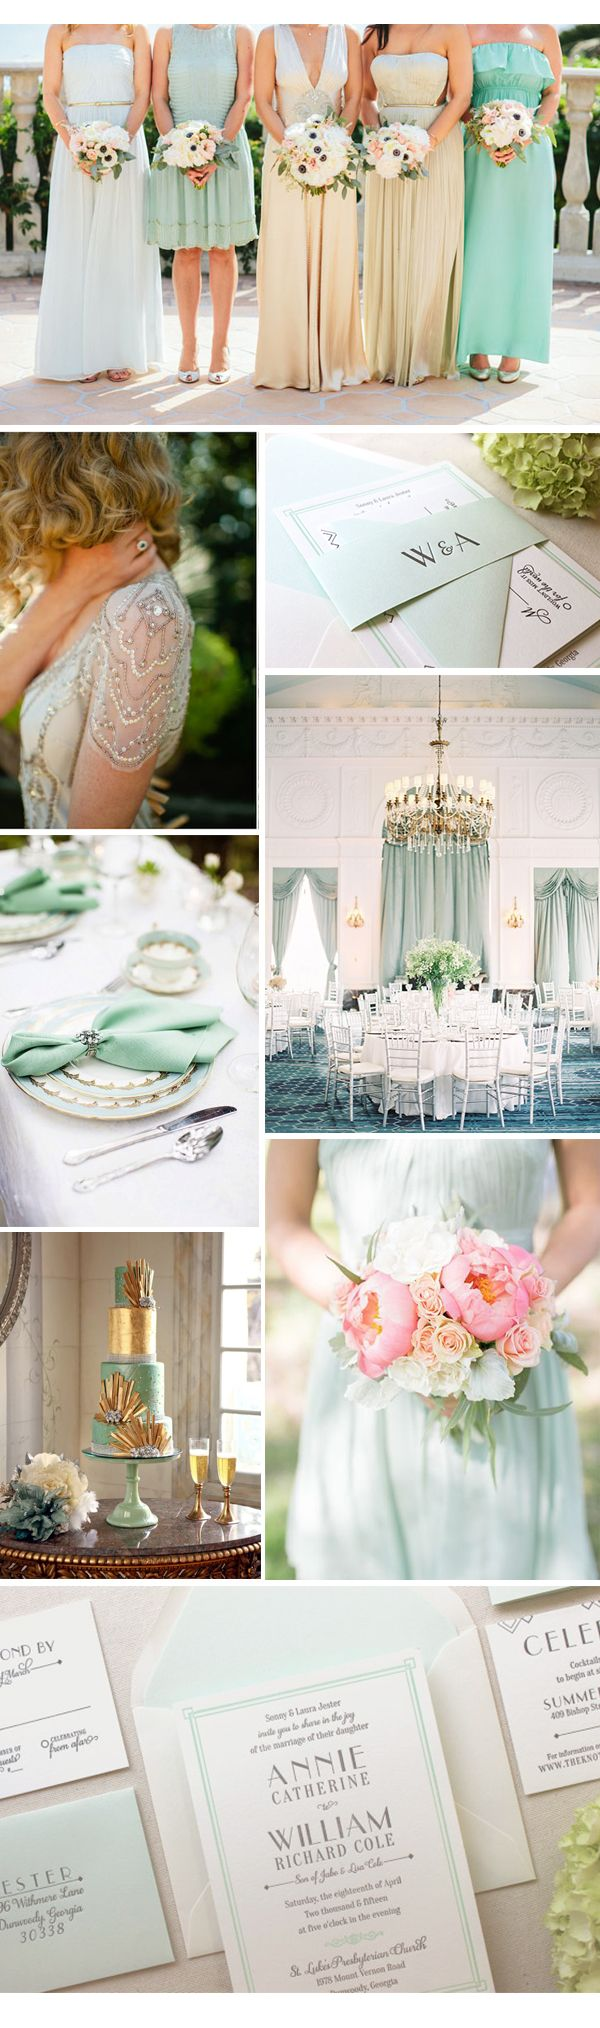 56 best 1930\'s country wedding ideas images on Pinterest | Wedding ...